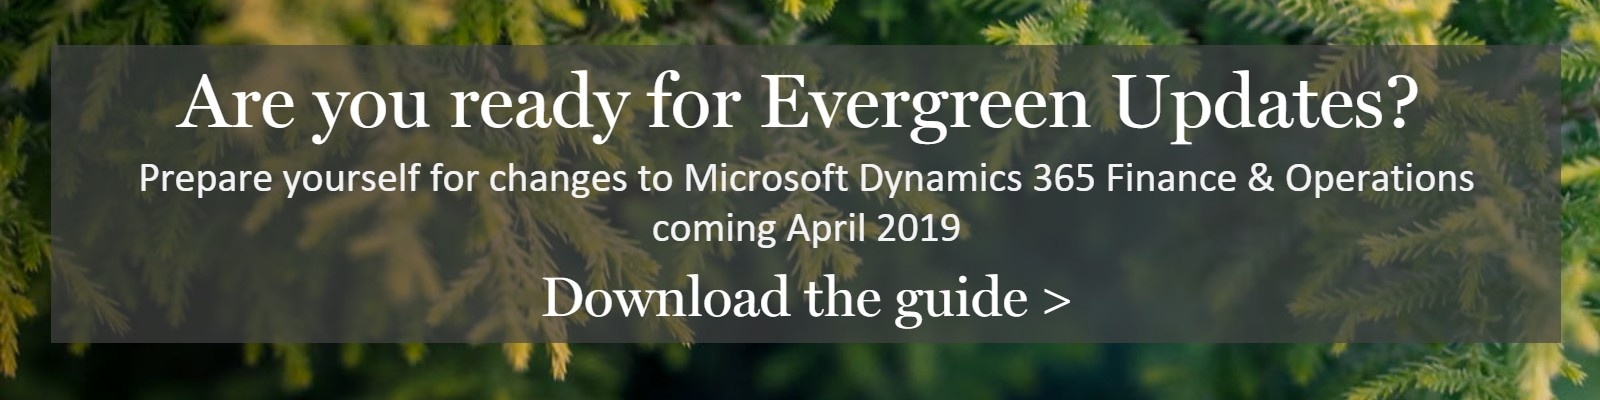 evergreen updates for microsoft dynamics